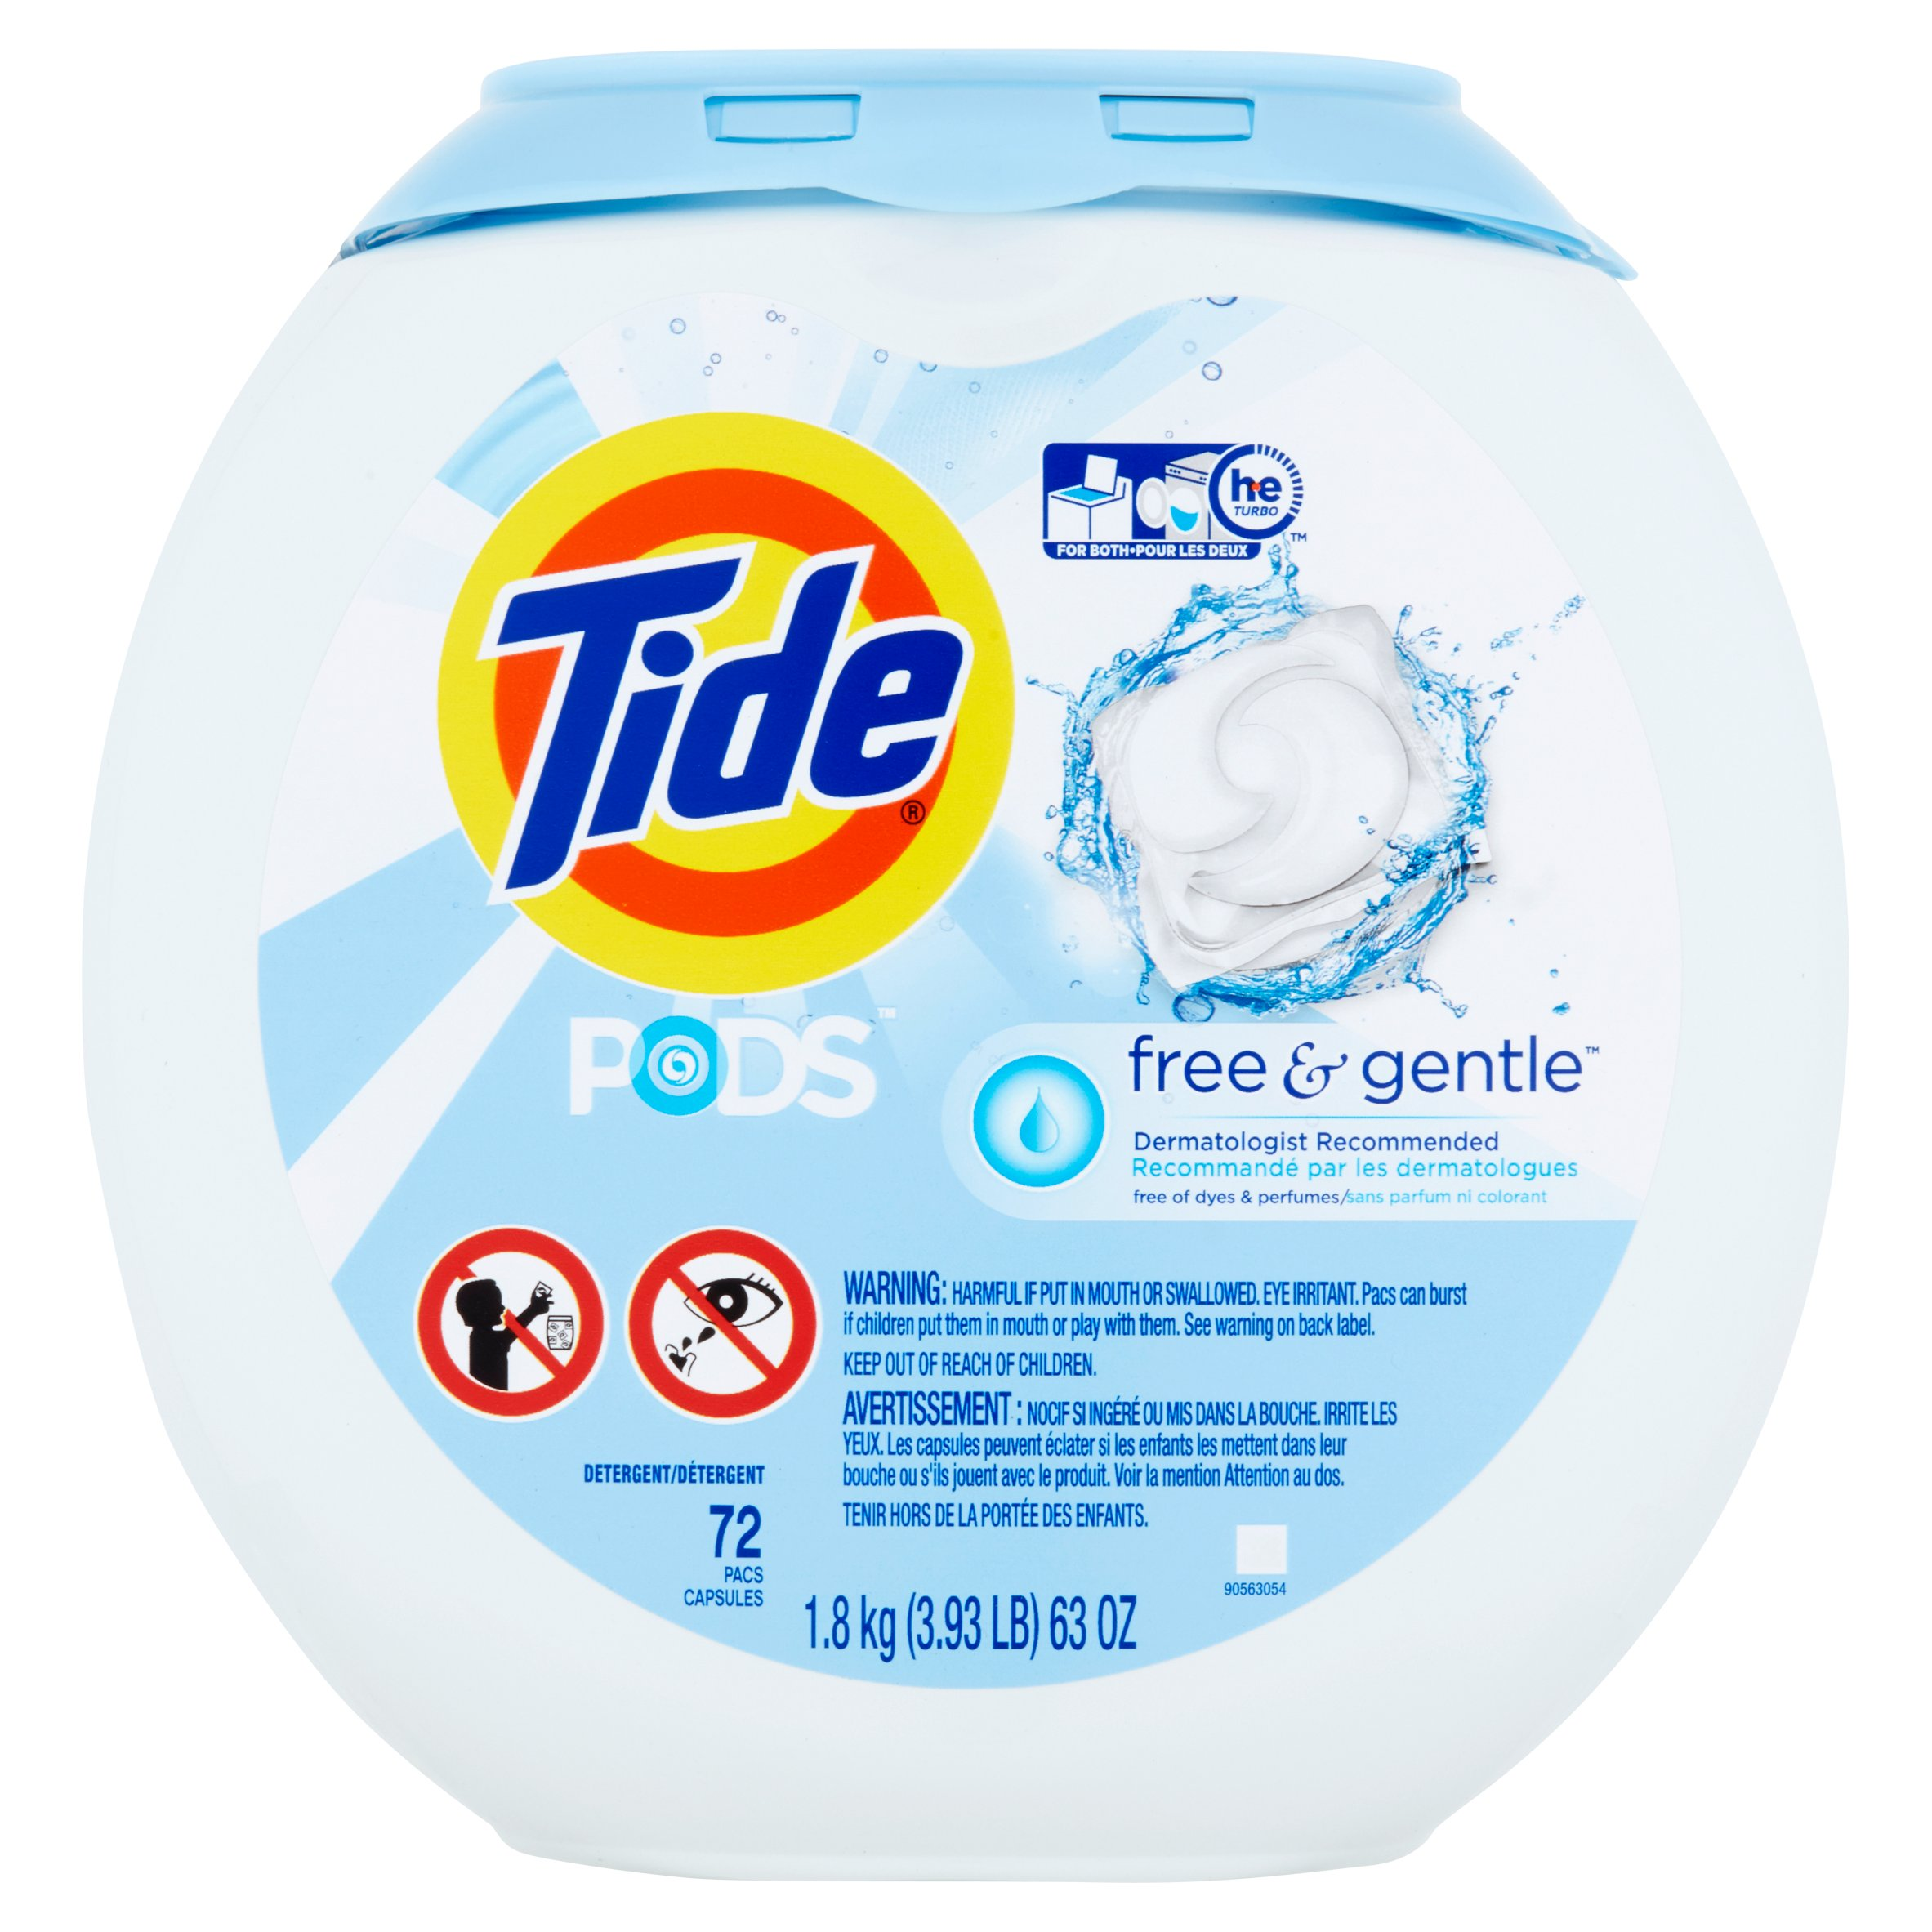 tide four in one laundry sheets Bounce fabric softener sheets, outdoor fresh, 240 count  tide pods 3 in 1 he turbo laundry detergent pacs, spring meadow scent, 72 count tub (packaging may vary) 45 out of 5 stars 3,368 $1795 bounce fabric softener dryer sheets free & gentle 240ct 47 out of 5 stars 110.